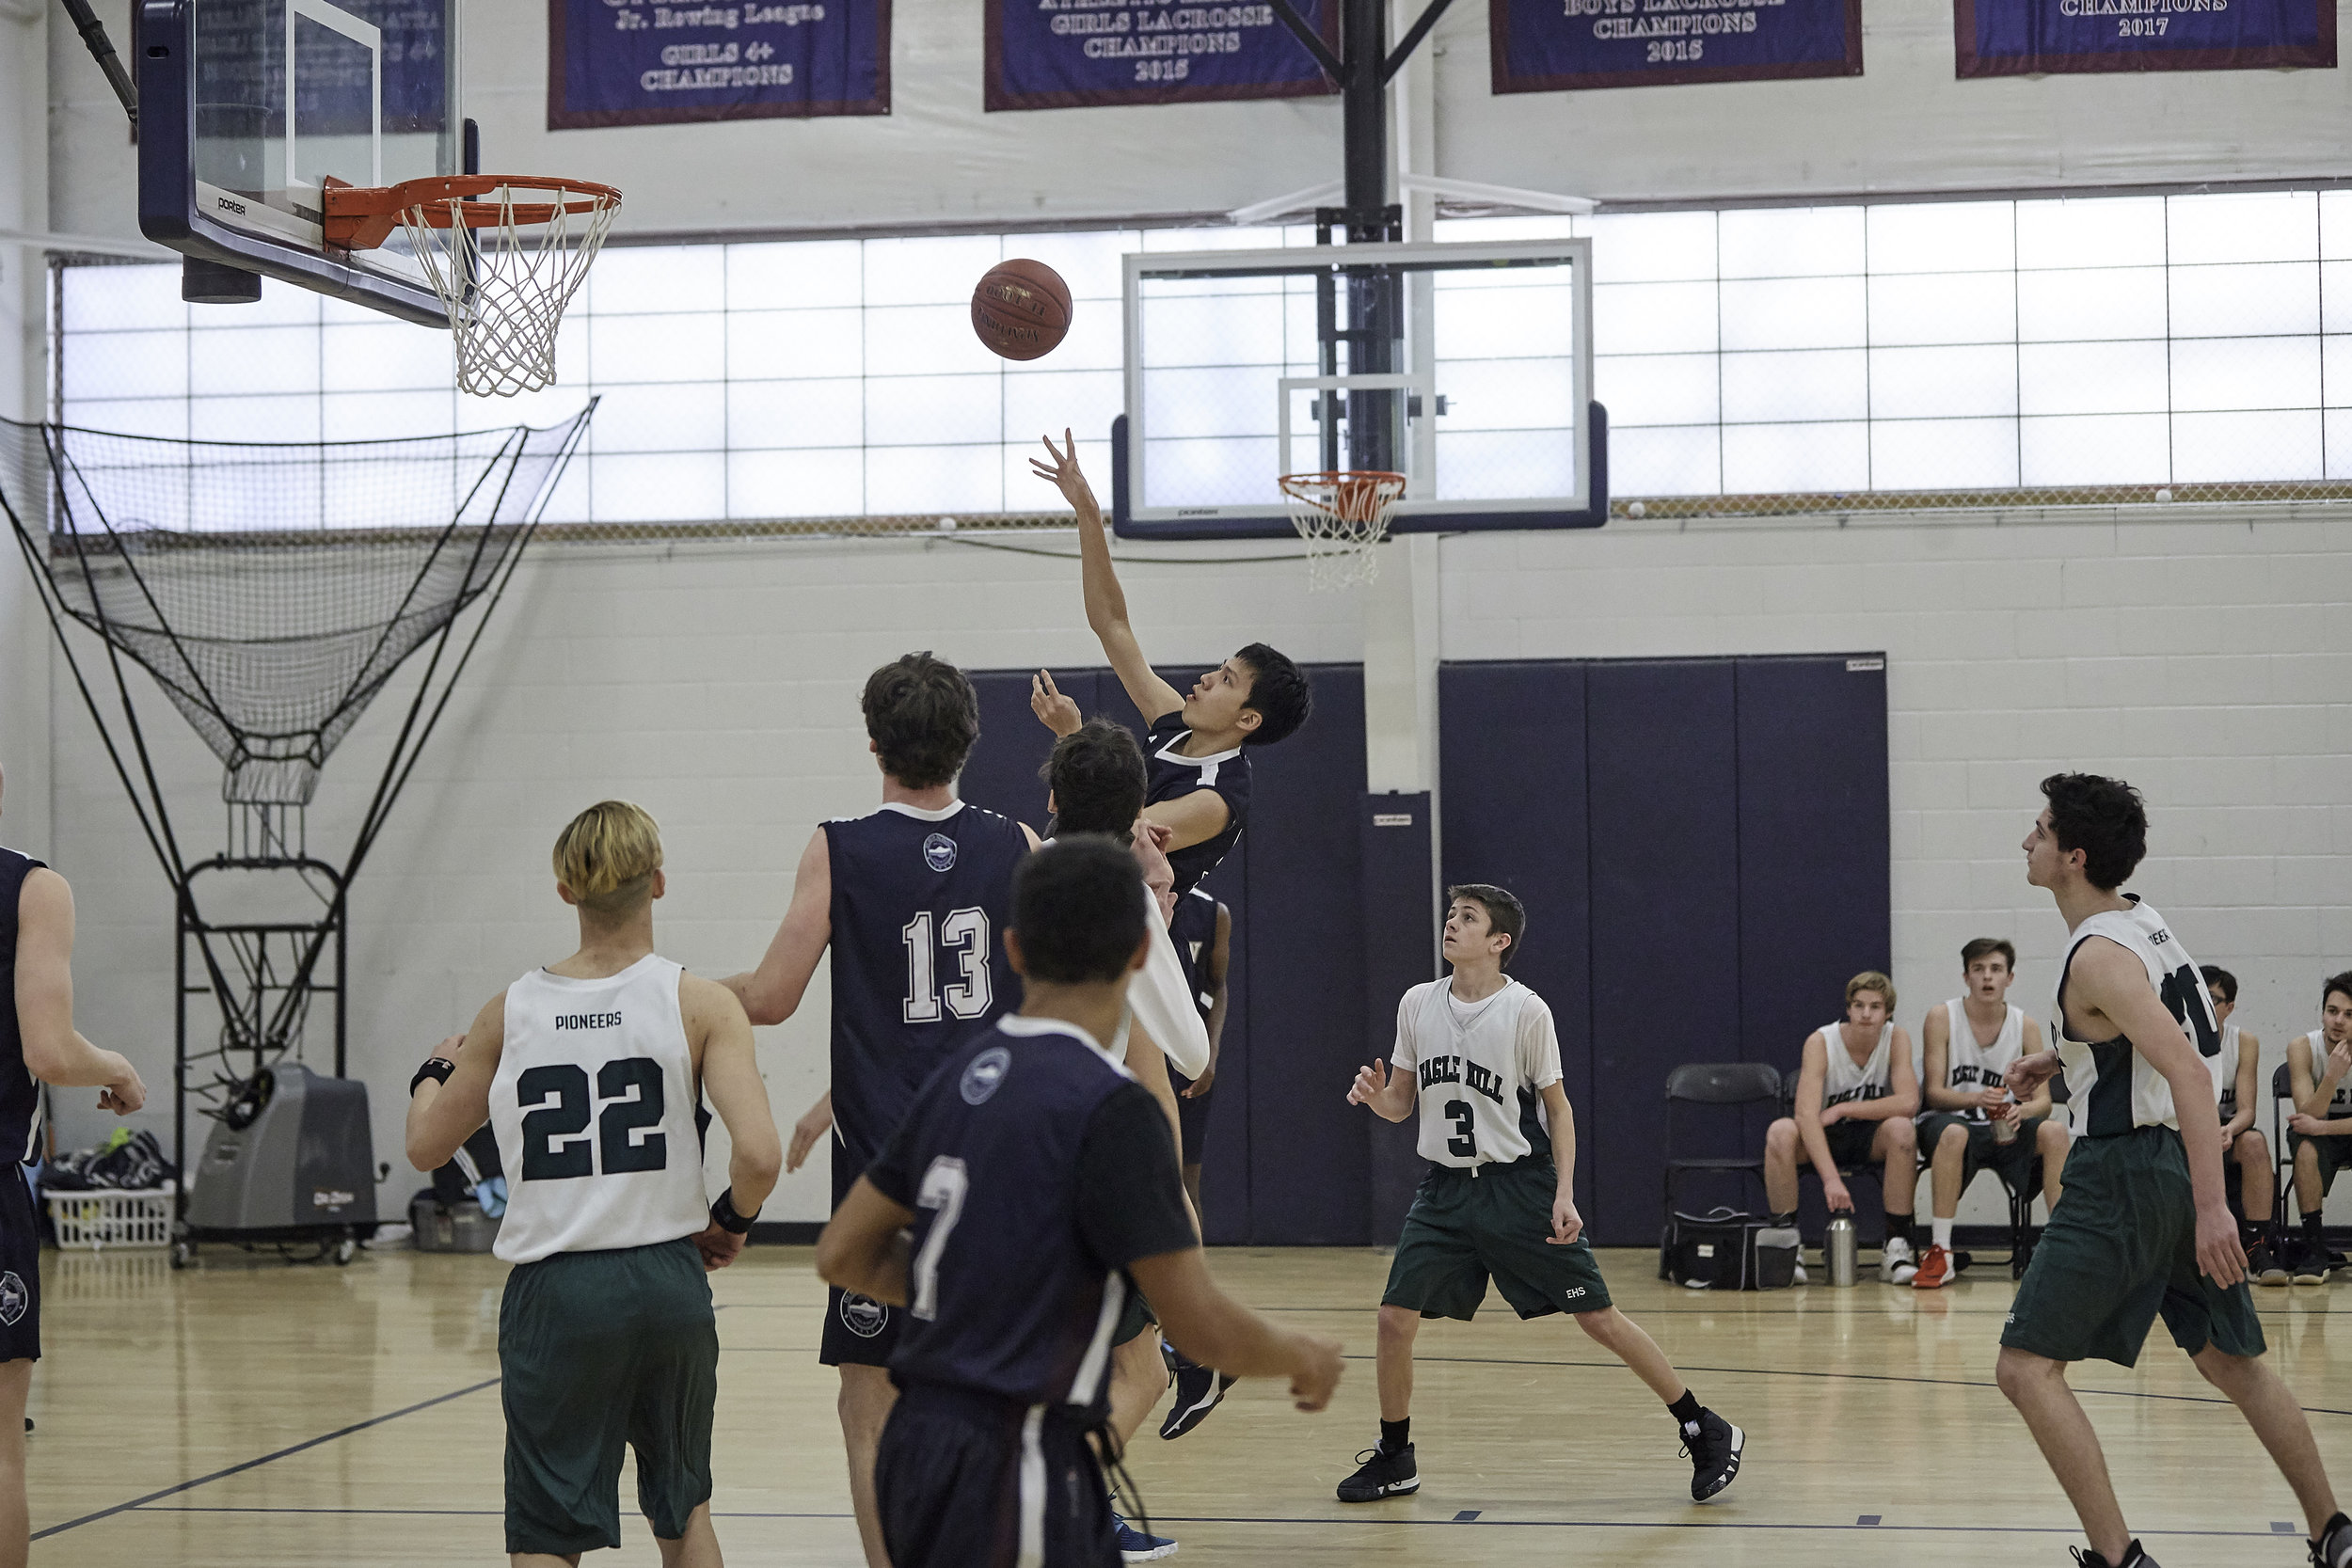 Boys Varsity Basketball vs. Eagle Hill School JV at RVAL Tournament - February 11, 2019 - 167724.jpg